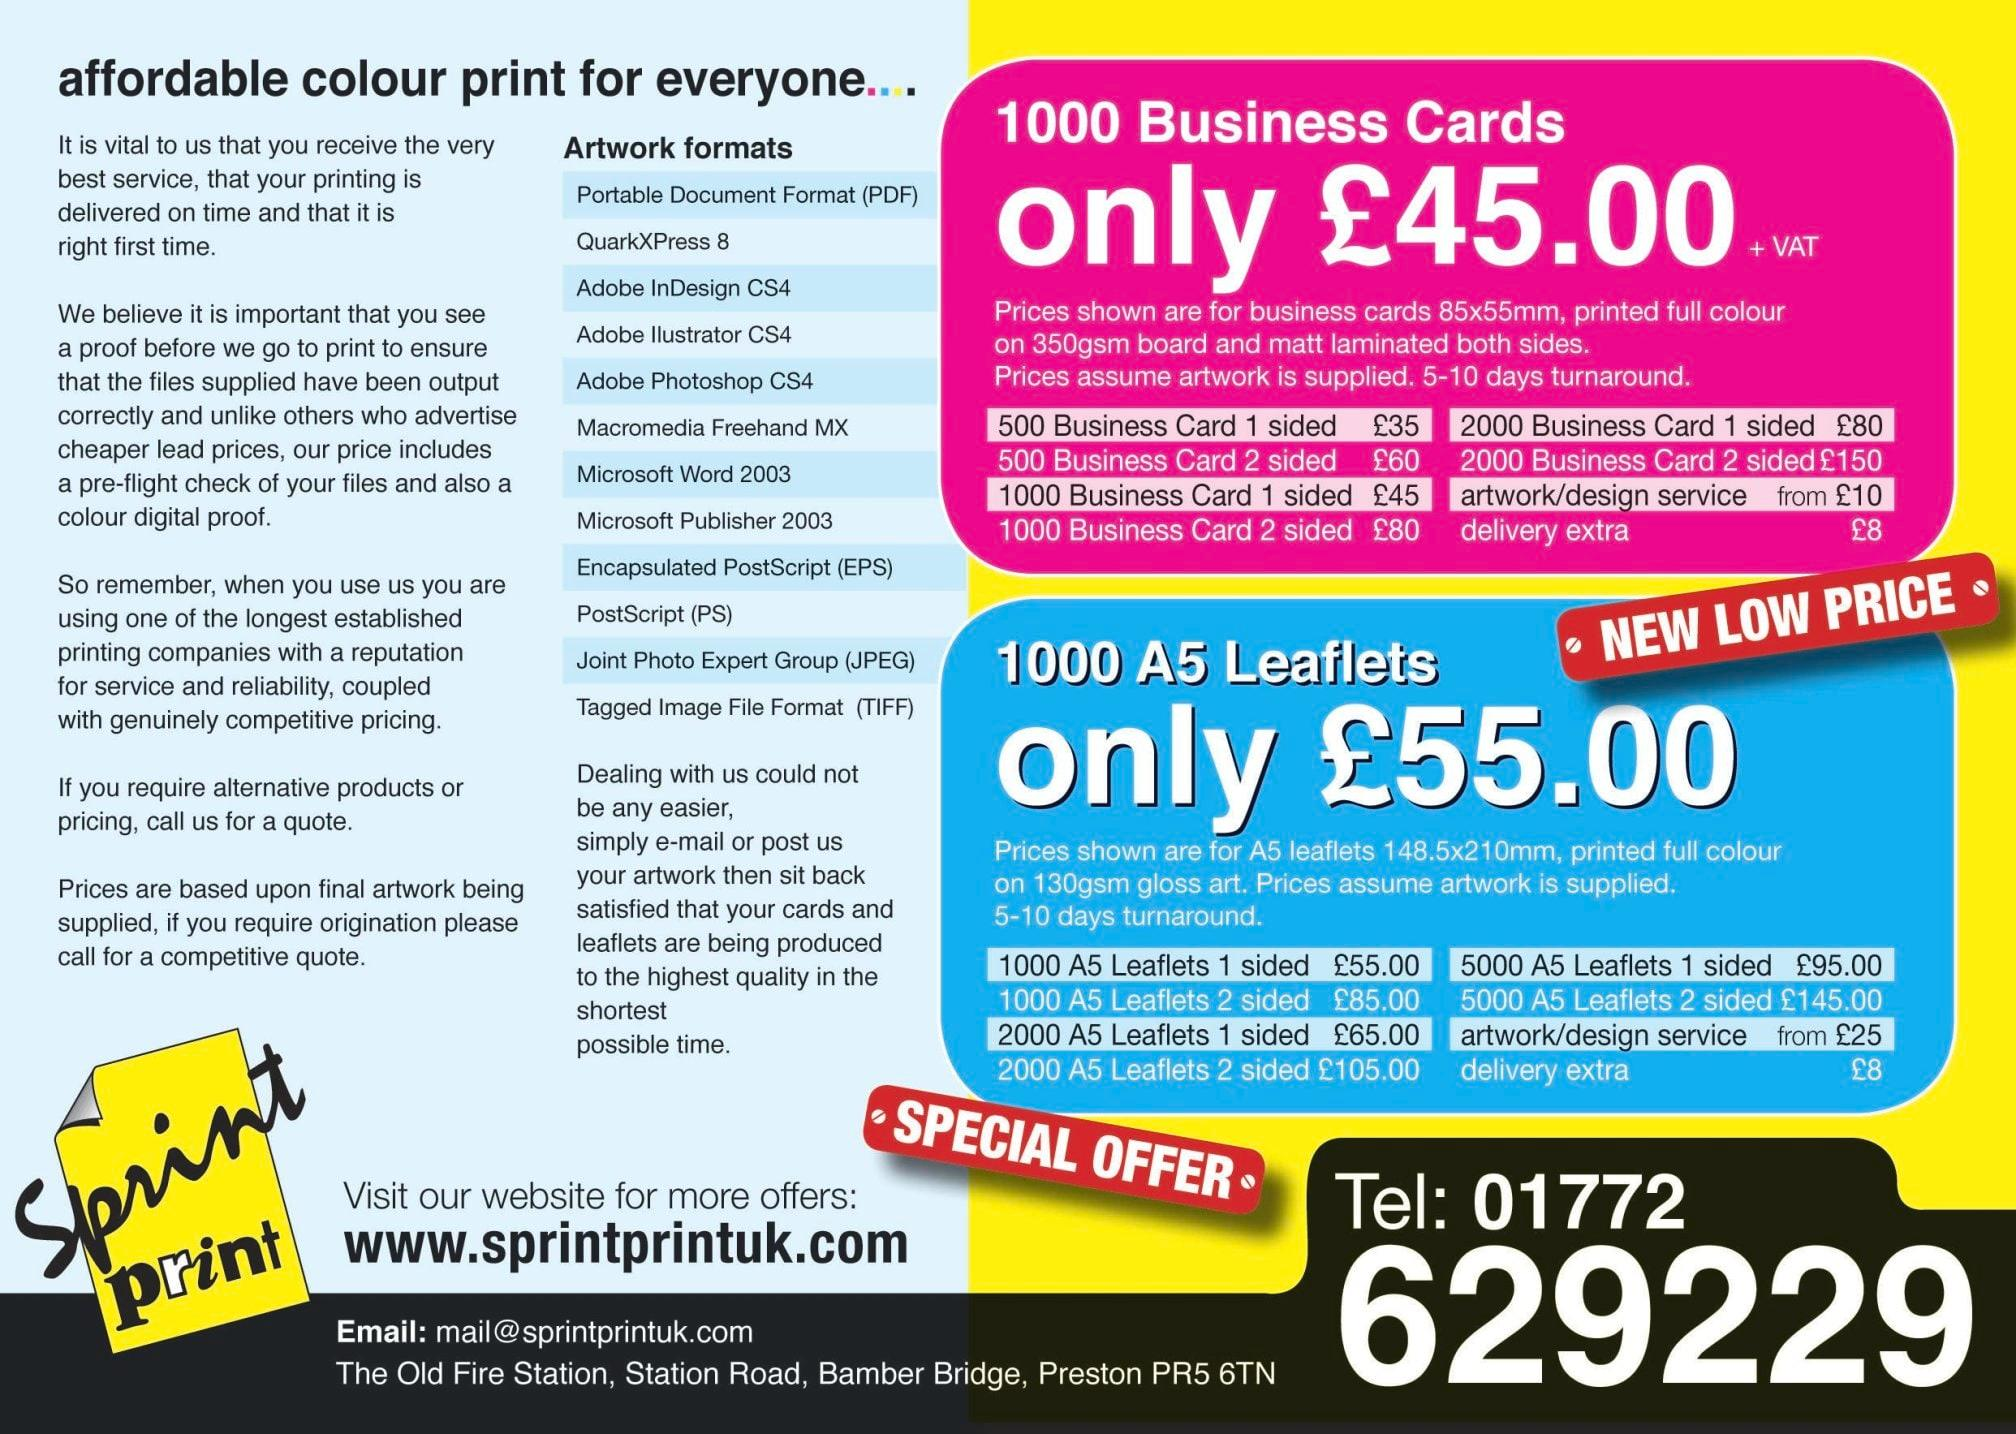 Sprintprint Design & Print - Printers General in Preston PR5 6TN ...